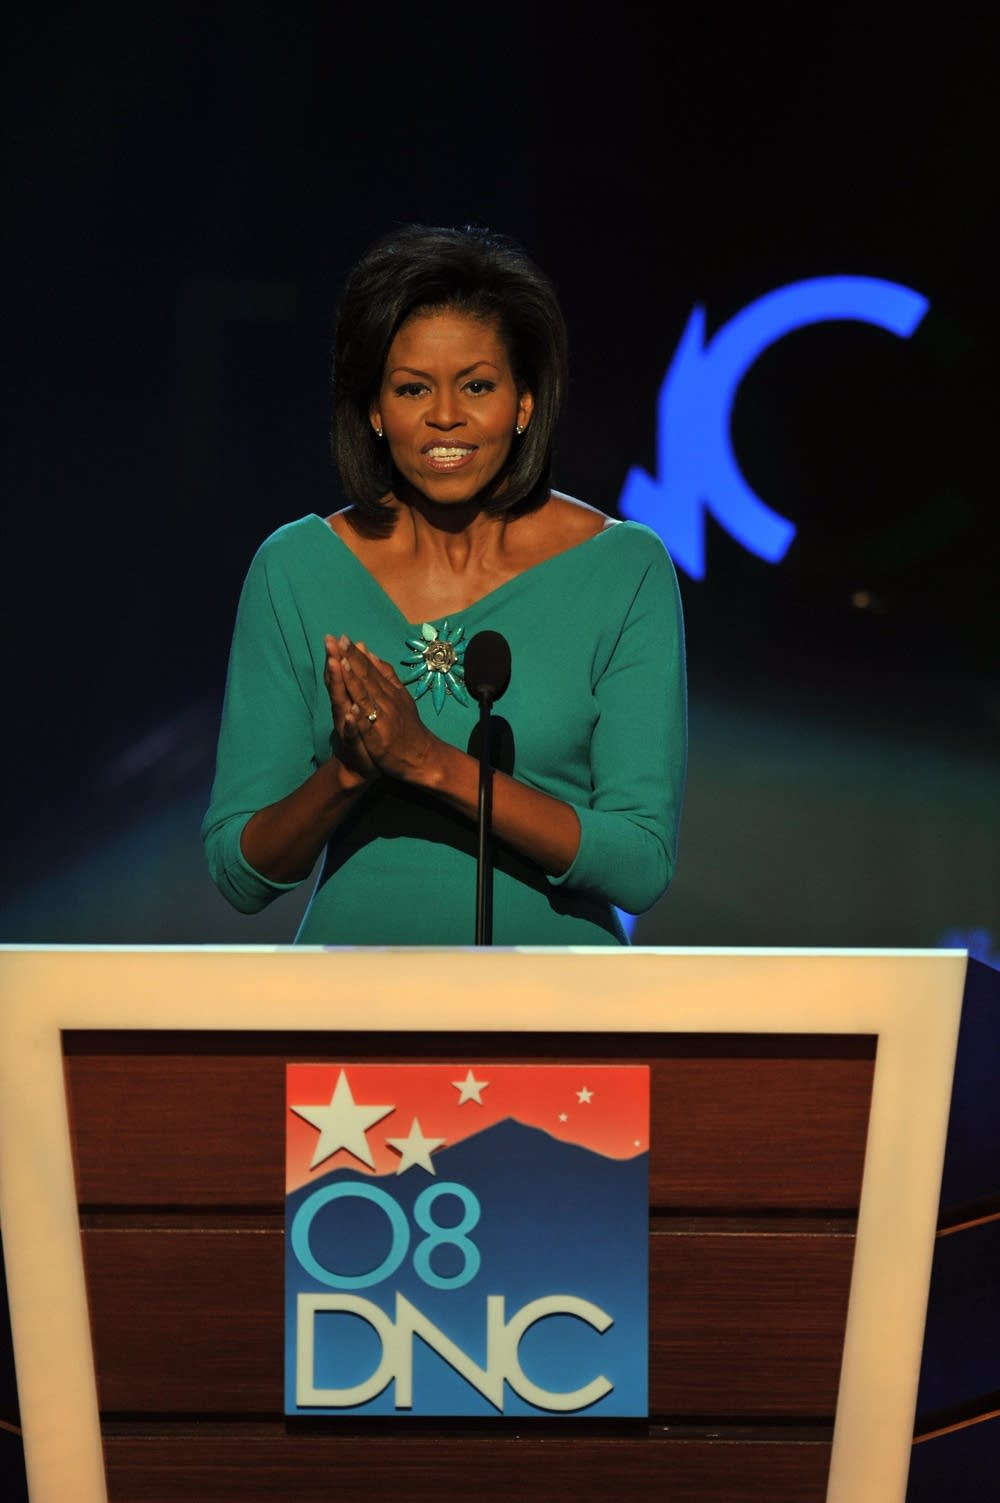 Michelle Obama at the podium